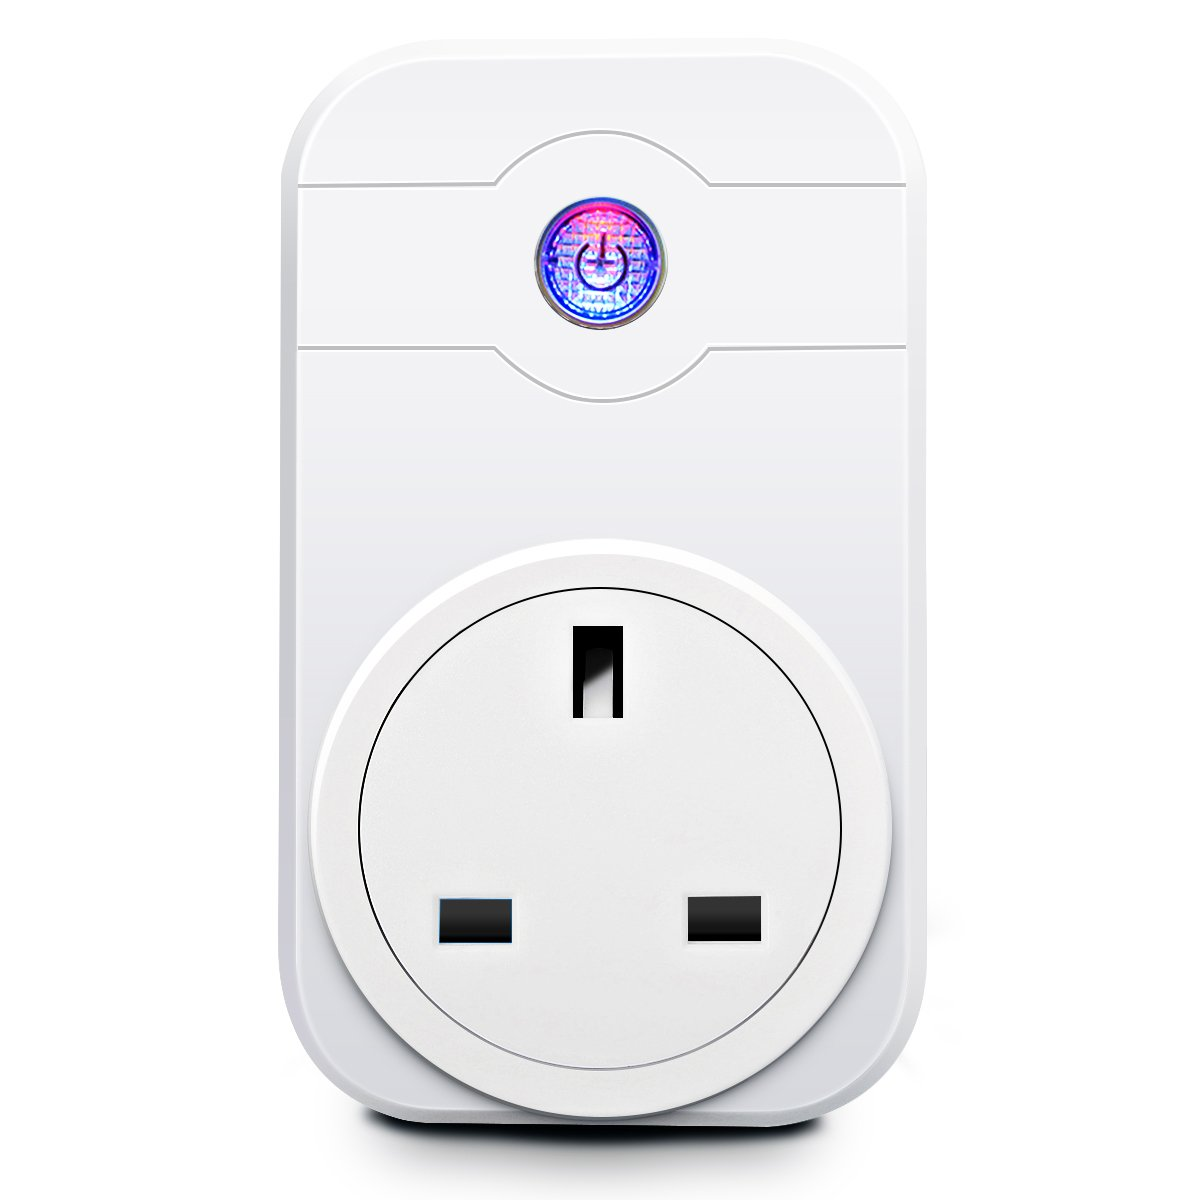 Smart Plug, ELEGIANT 2.4G WiFi Smart Timer Socket Work with Echo Alexa/Google Home Assistant Cell Phone Wireless Remote Control Turn On/Off Electrics Switch for Household Appliances ELEGIANT Co. LTD